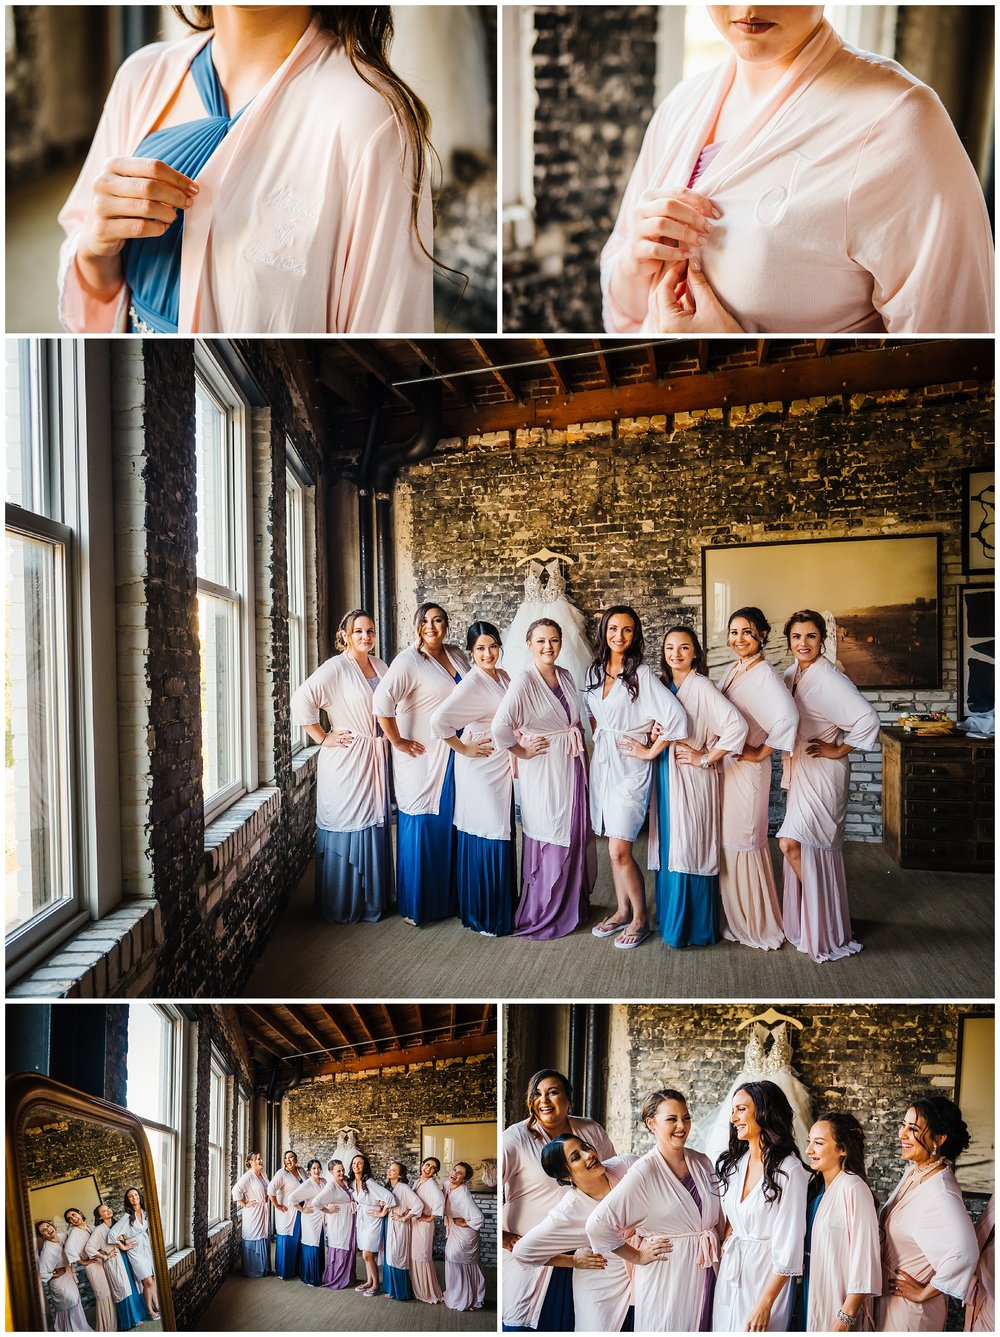 tampa-wedding-photographer-oxford-exchange-garland-candlelight-gold-hayley-paige_0008.jpg